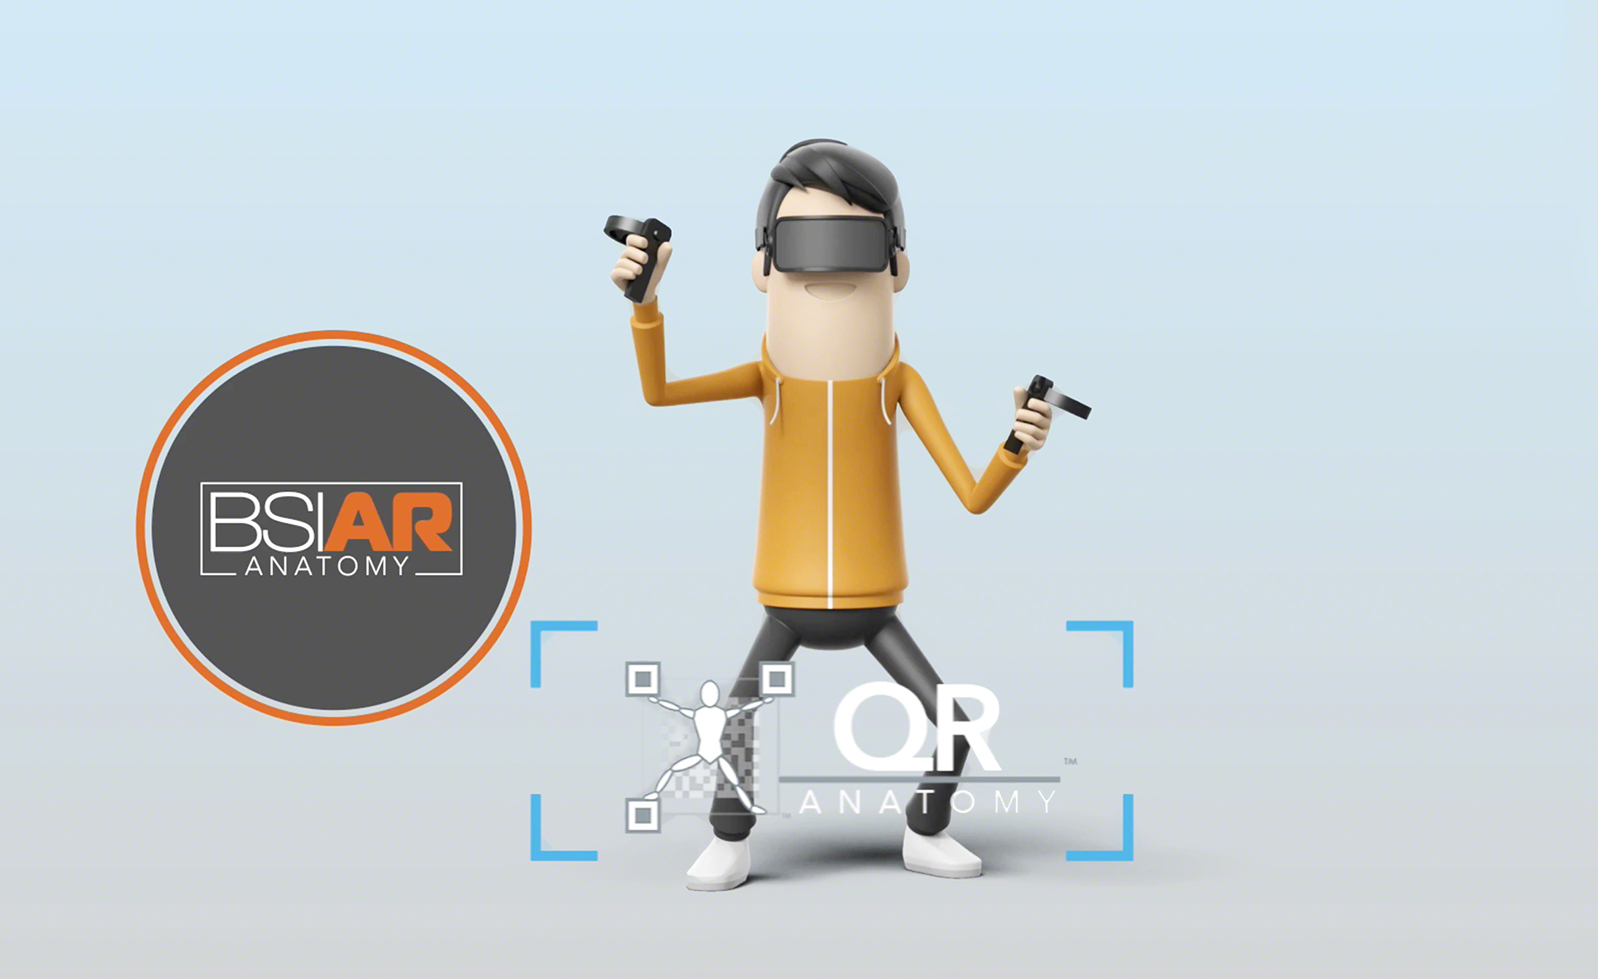 3D animation of a man with a VR headset